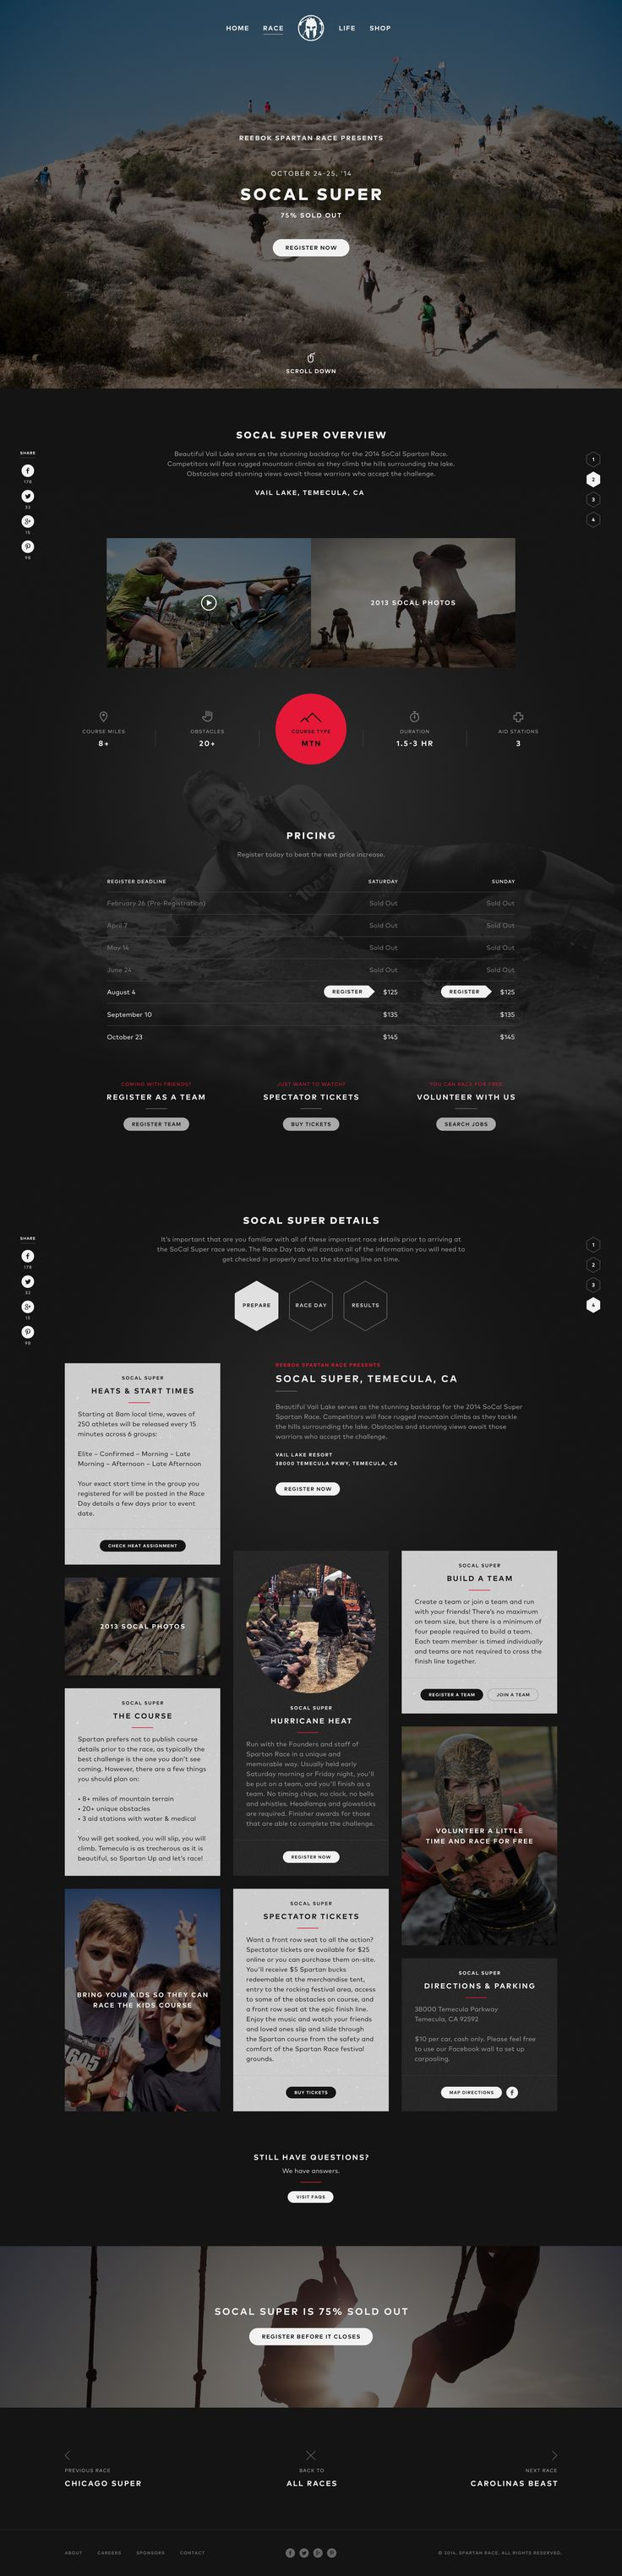 Social Super | #webdesign #it #web #design #layout #userinterface #website…